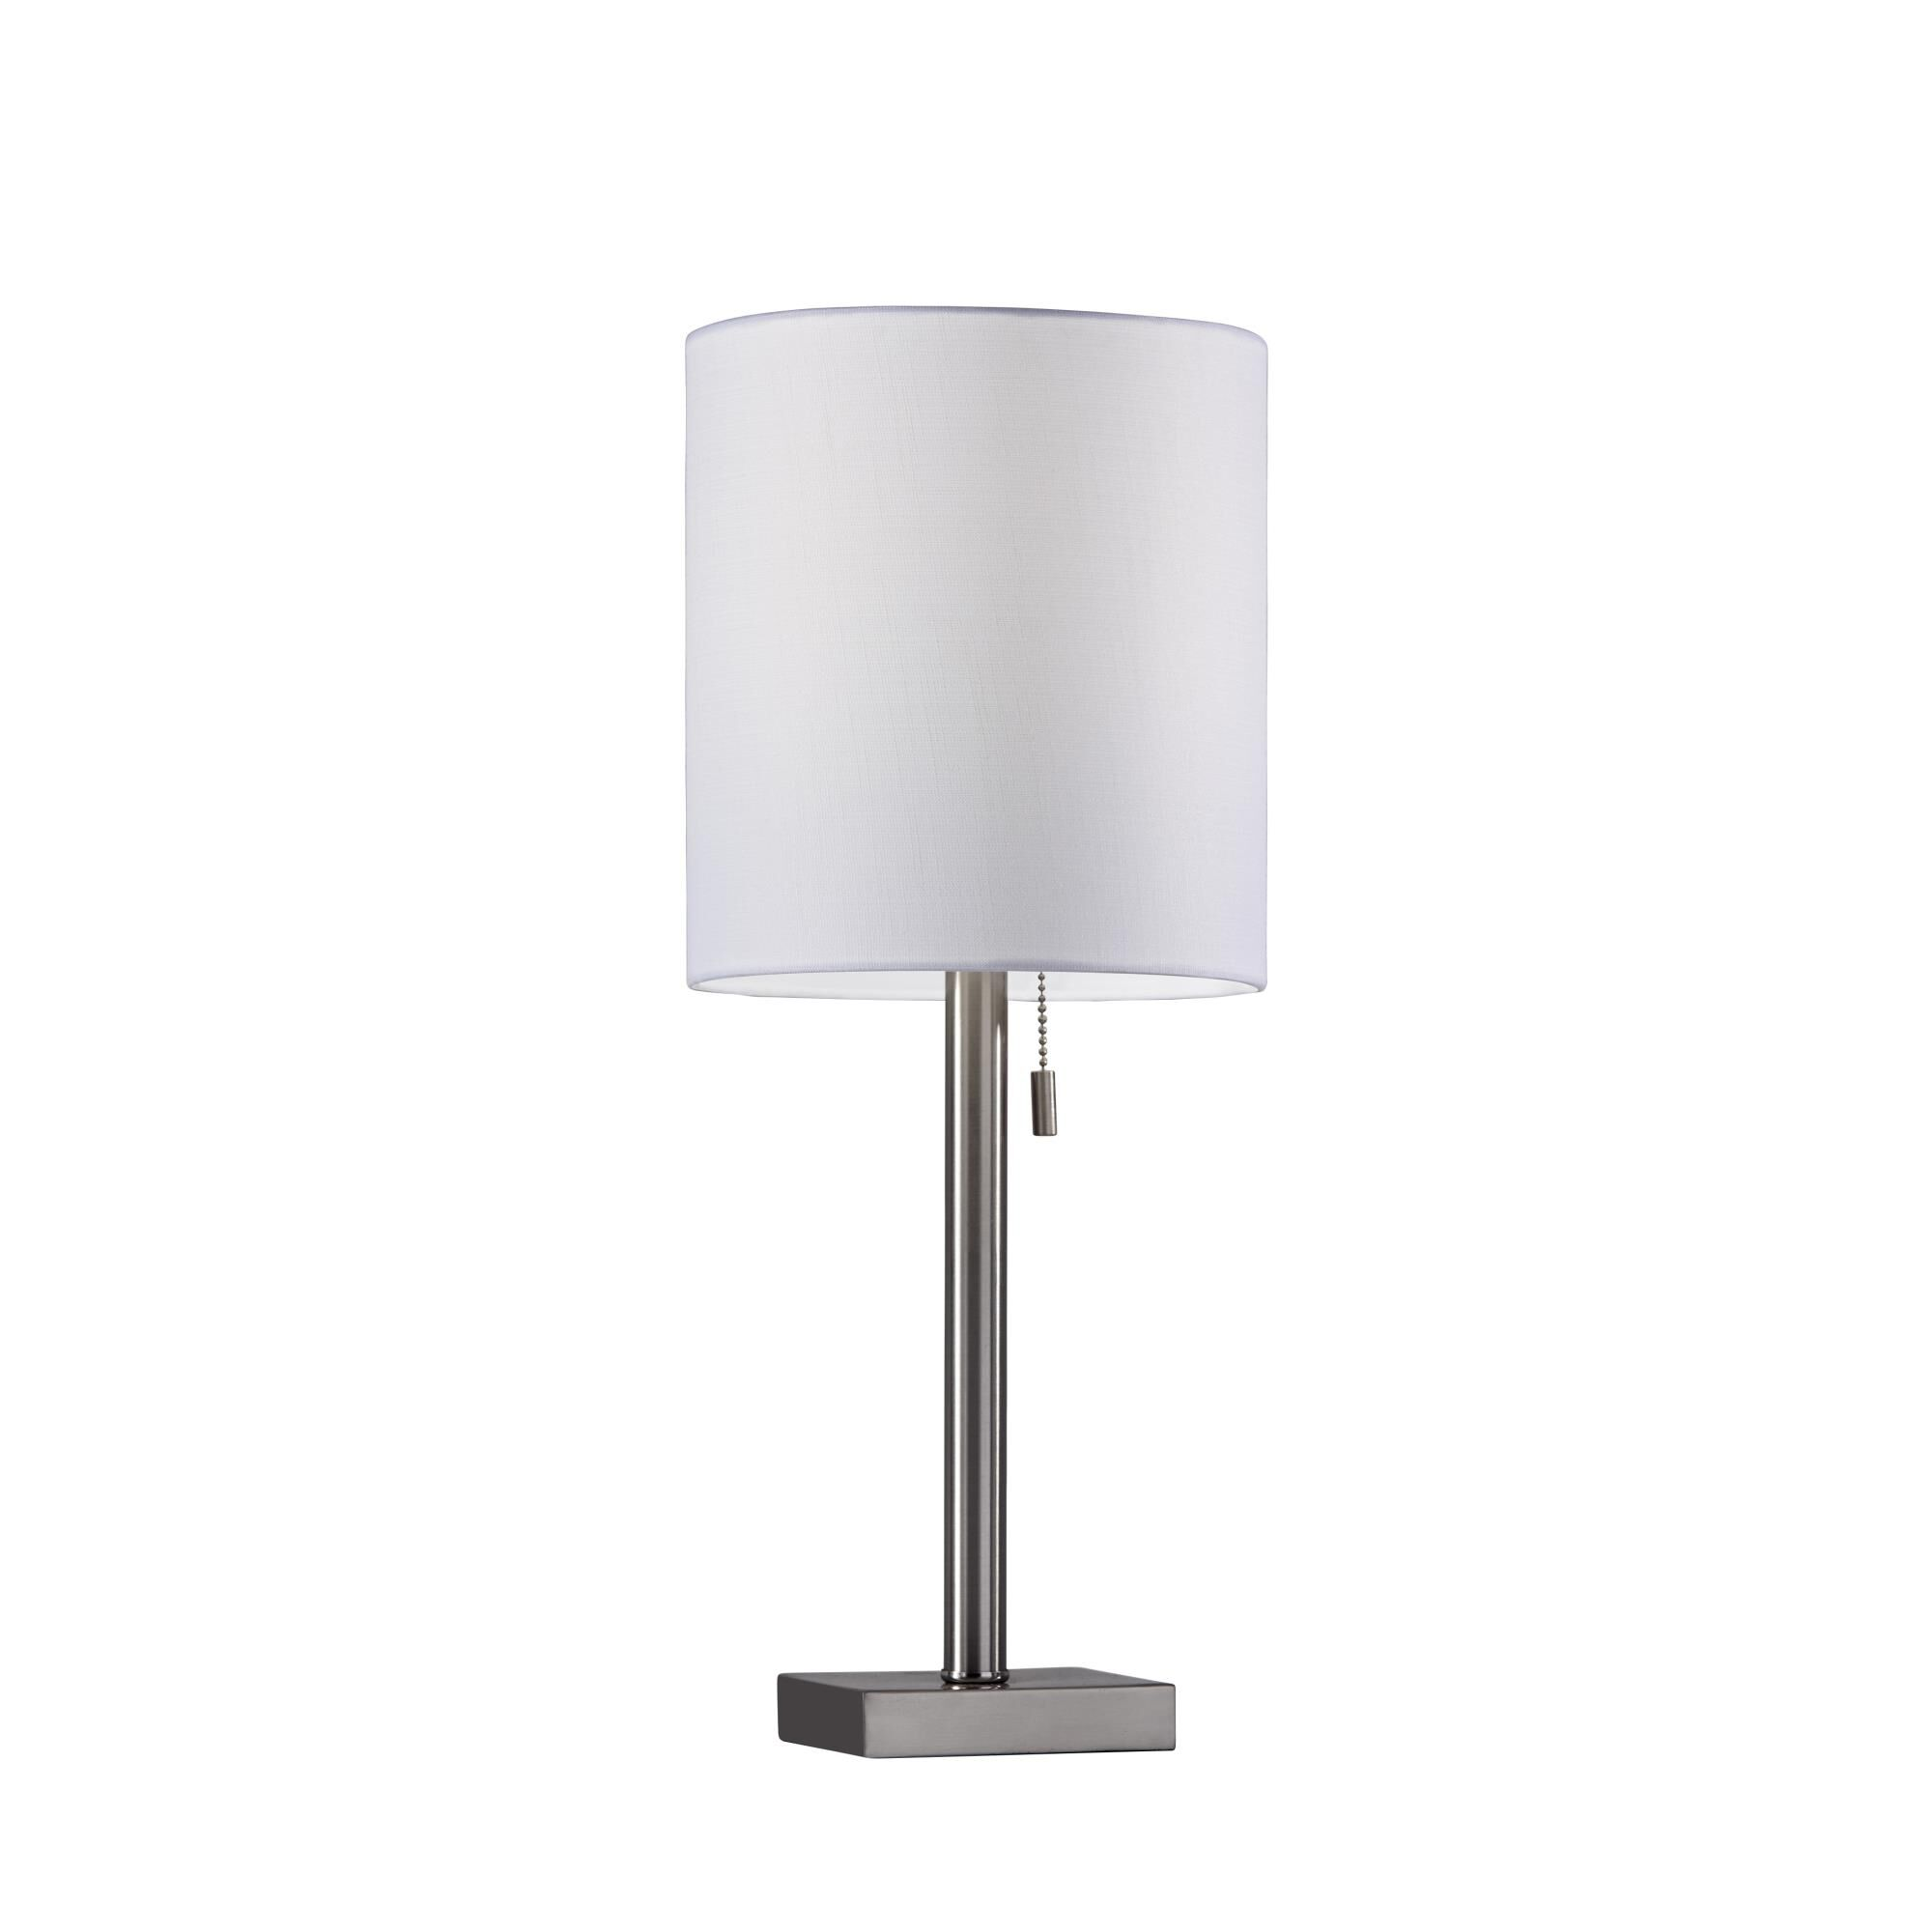 Adesso Liam Table Lamp Liam - 1546-22 - Transitional Table Lamp